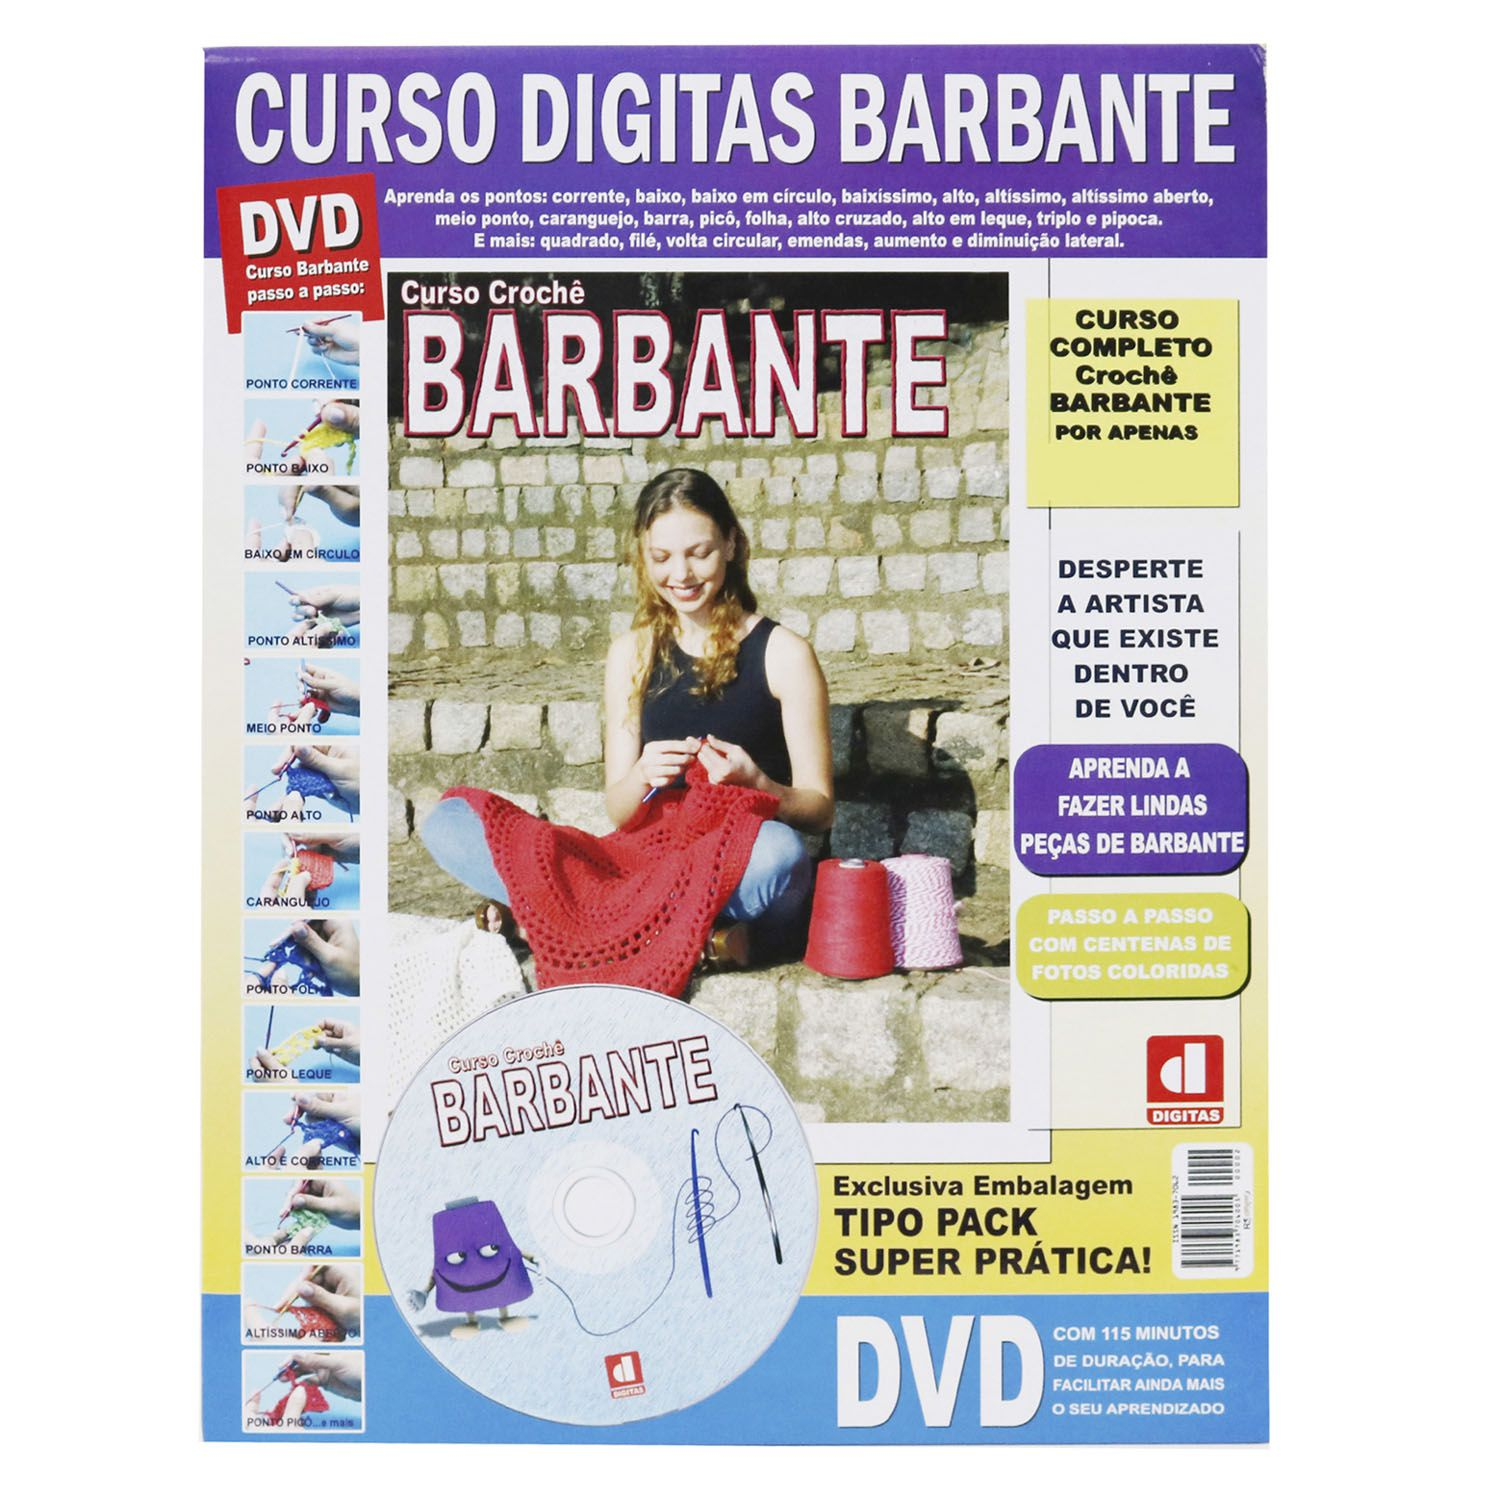 Curso Digitas Barbante- DVD + Revista/Curso - Passo a Passo